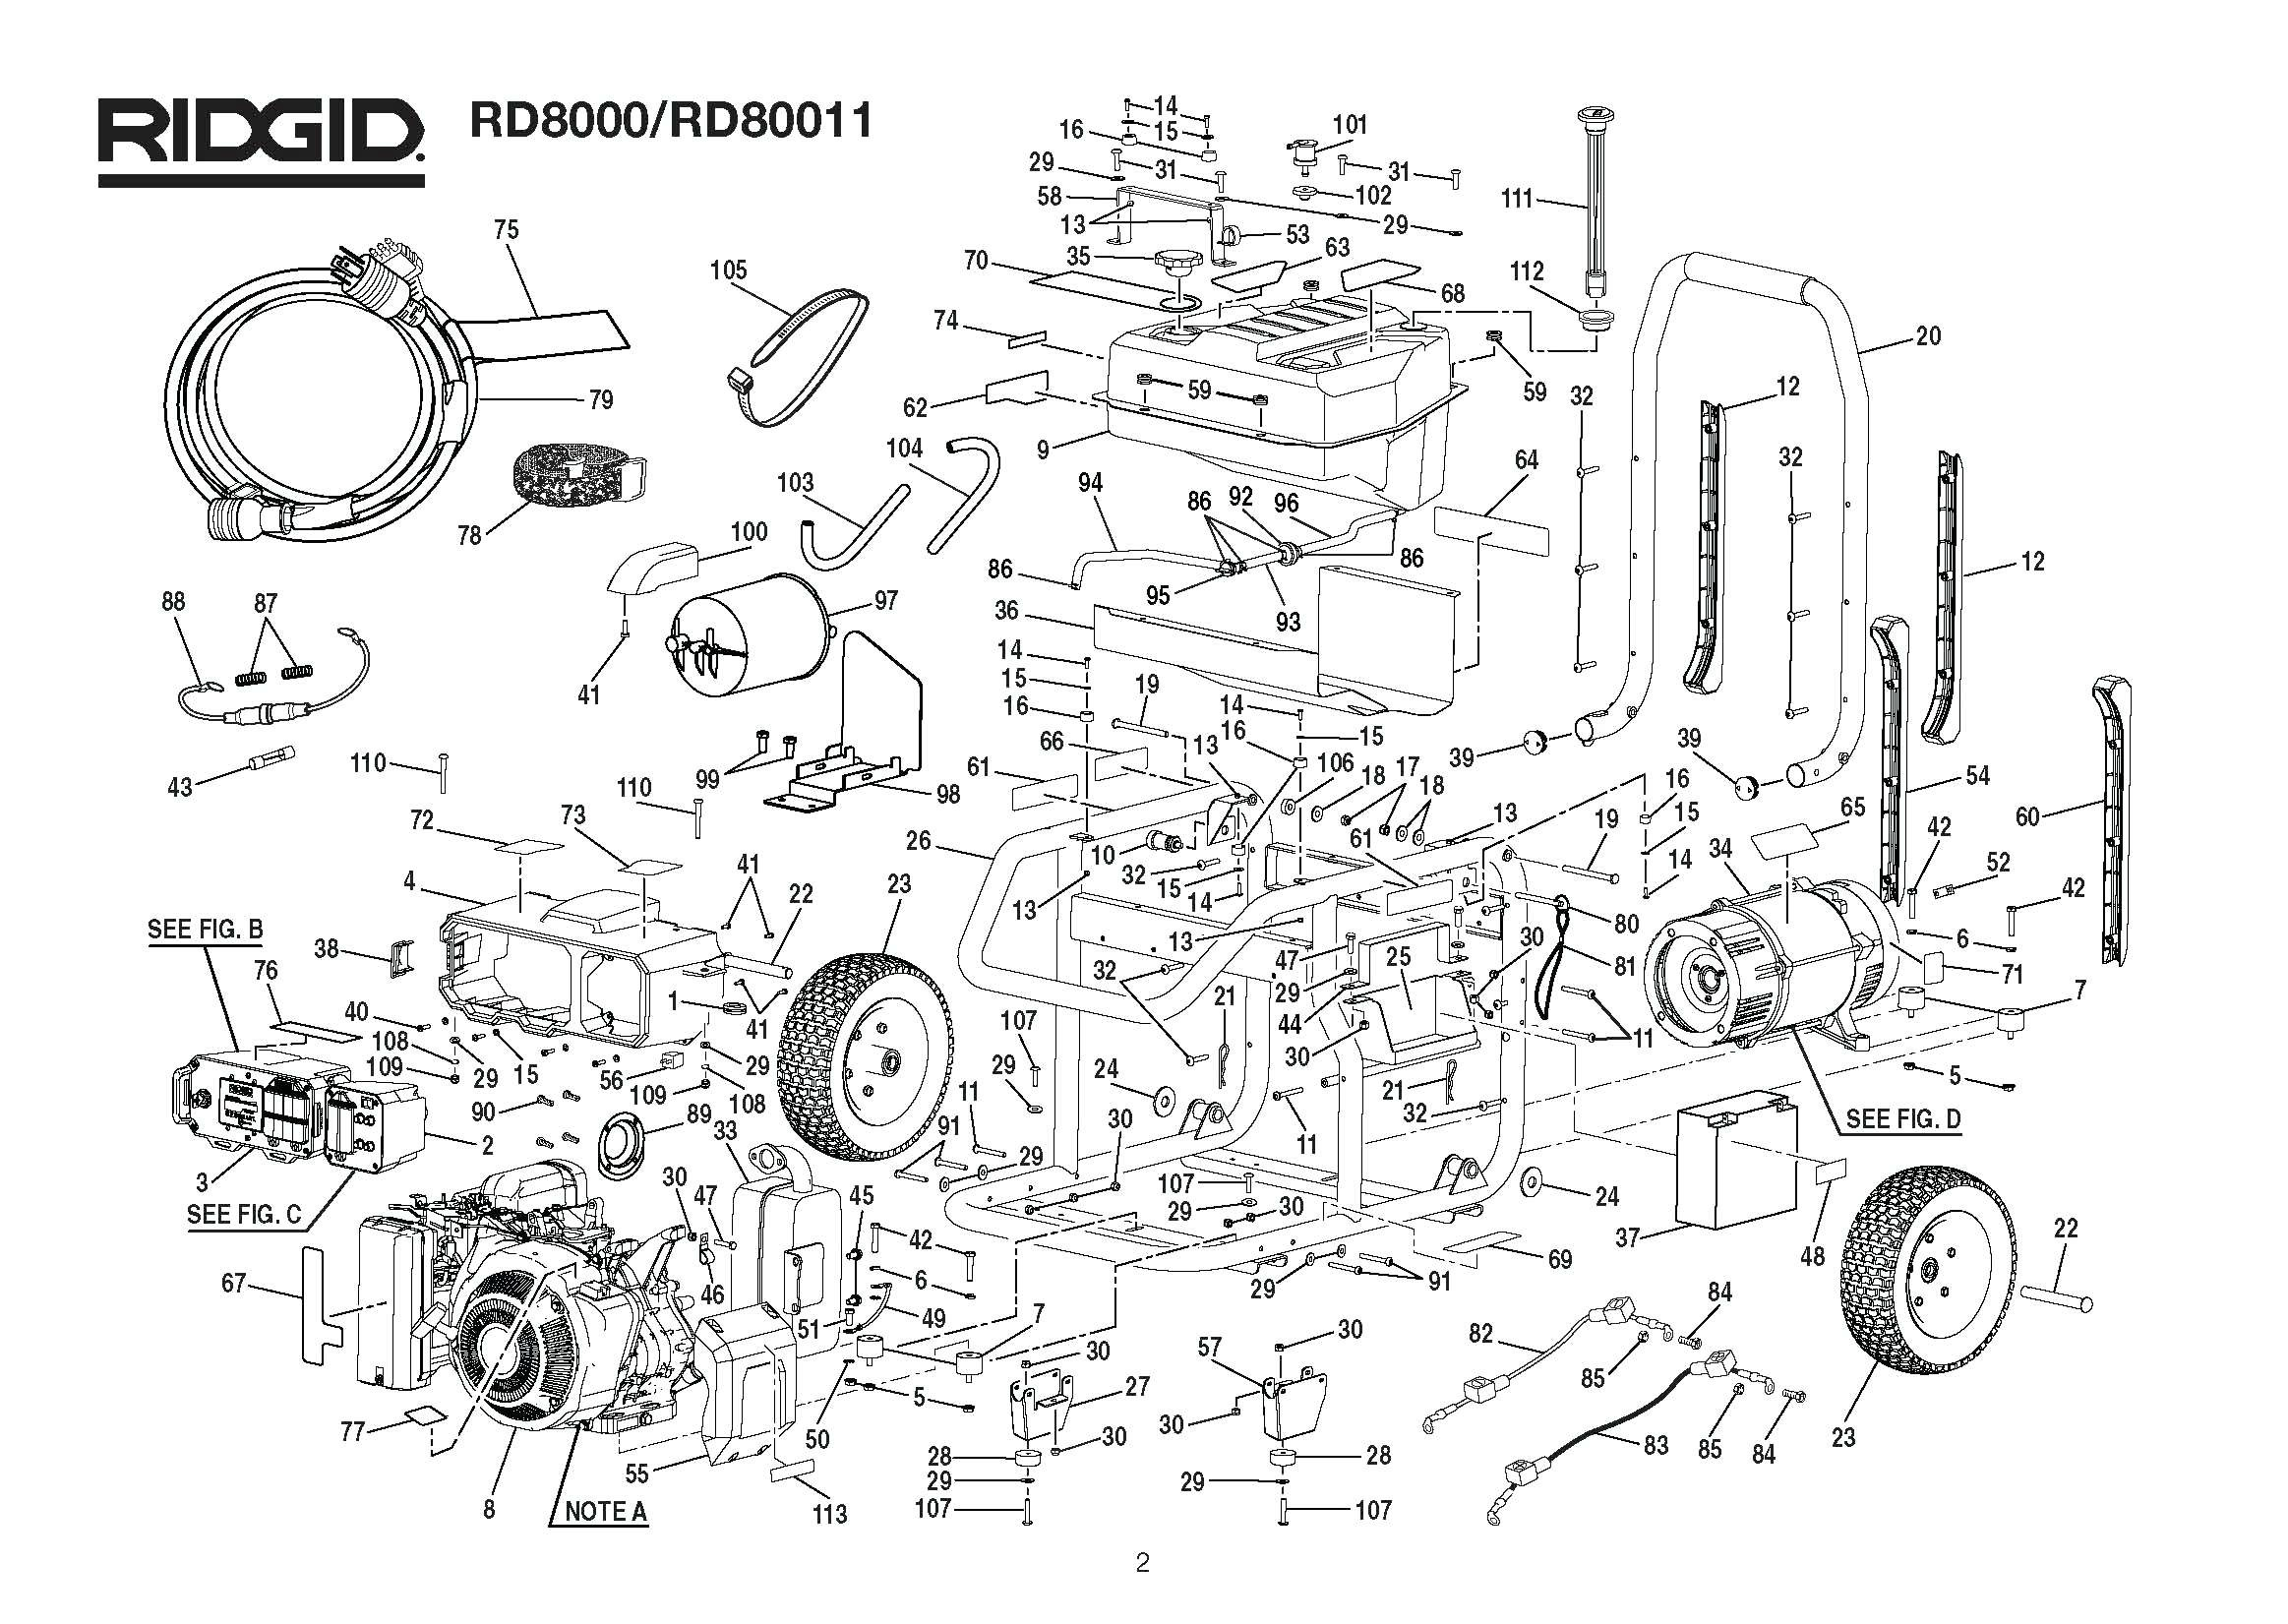 ENGINE WIRING DIAGRAM SUBARU EJ20 - Auto Electrical Wiring ...